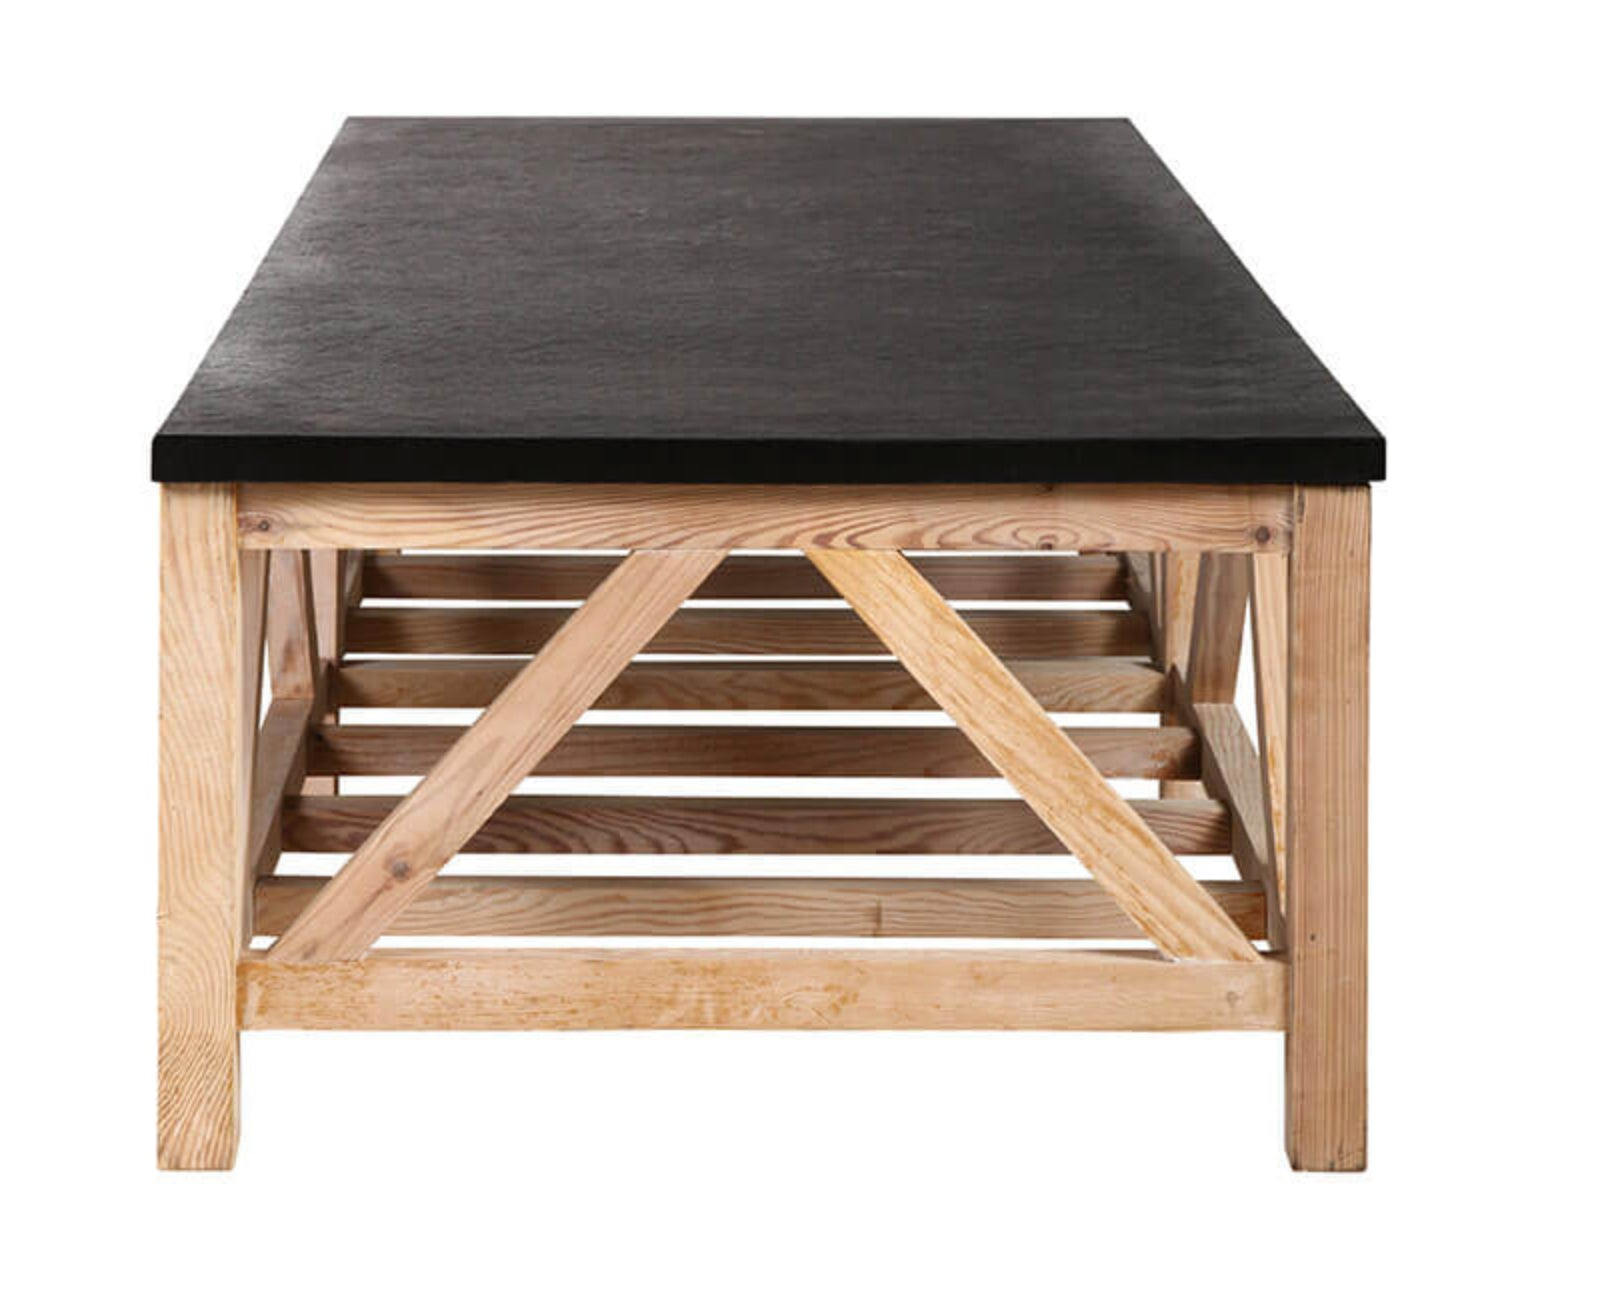 Bobo Intriguing Objects Slate Coffee Table Chanel Home